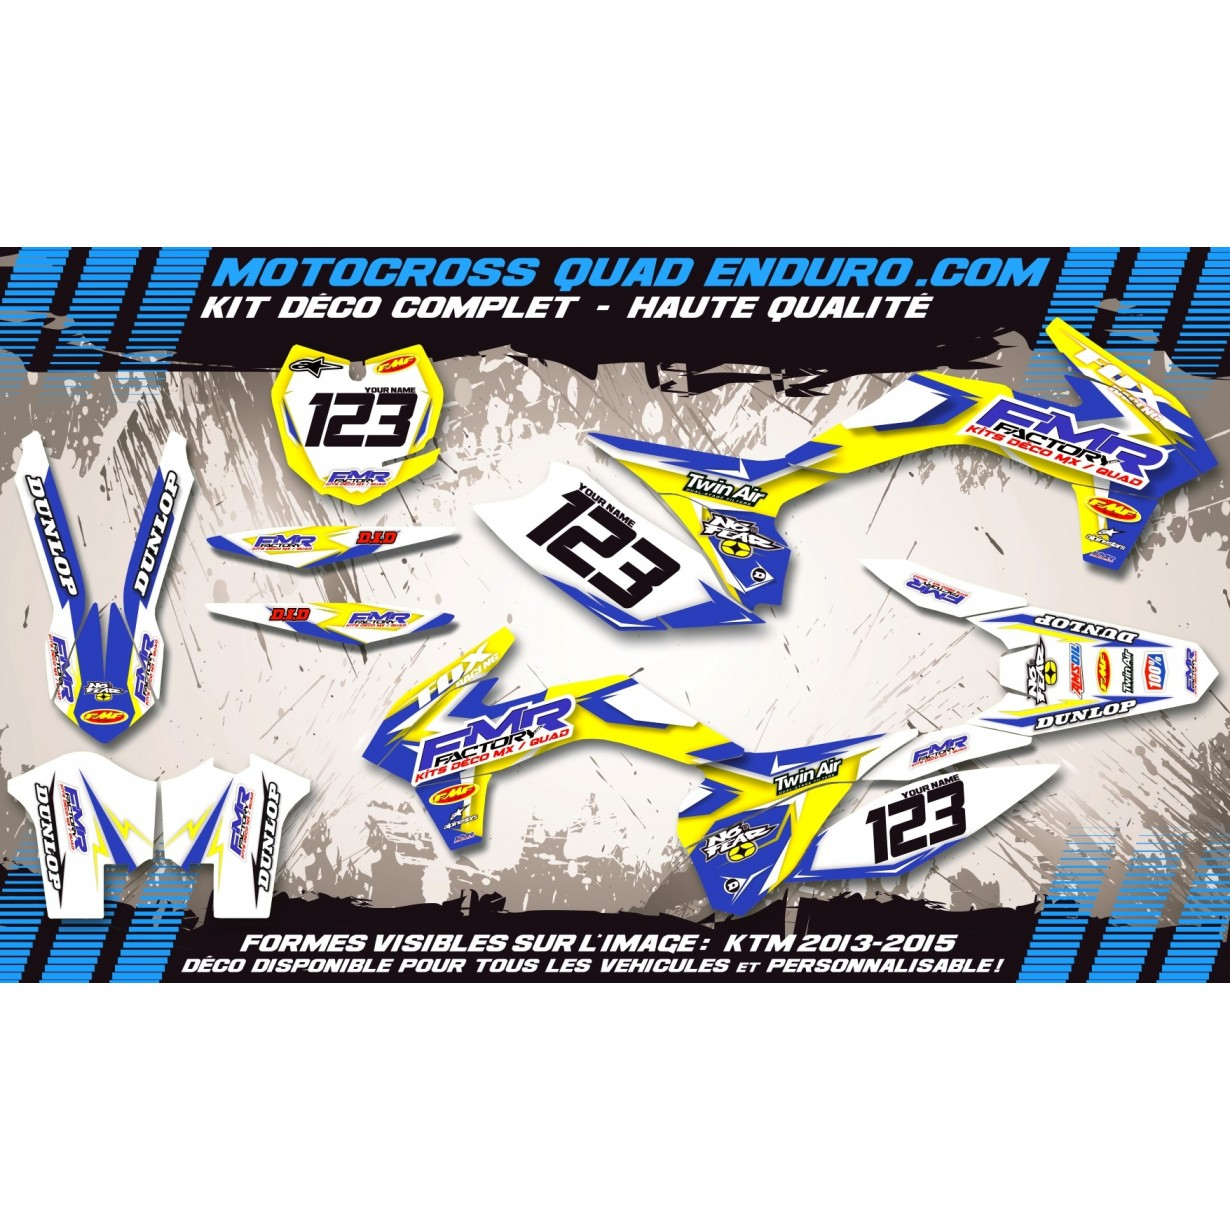 KIT DÉCO Perso 700 RAPTOR 13-18 Quad Fmr Factory MA13D